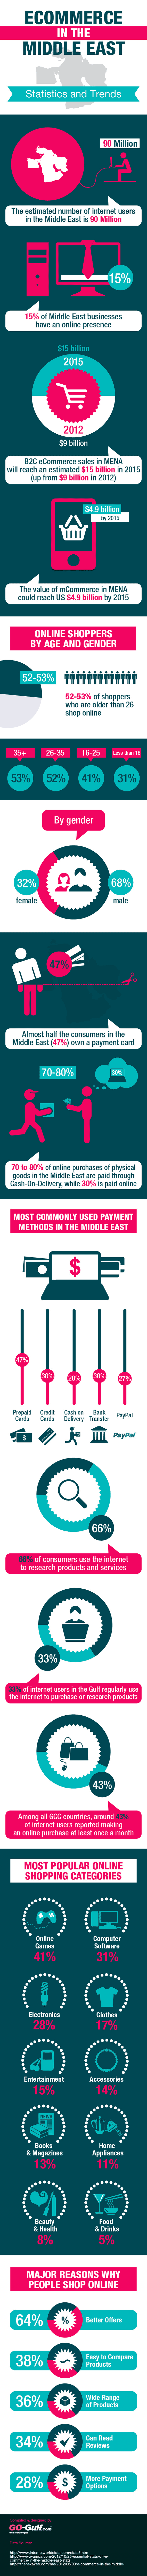 Middle East e-Commerce Market-Infographic